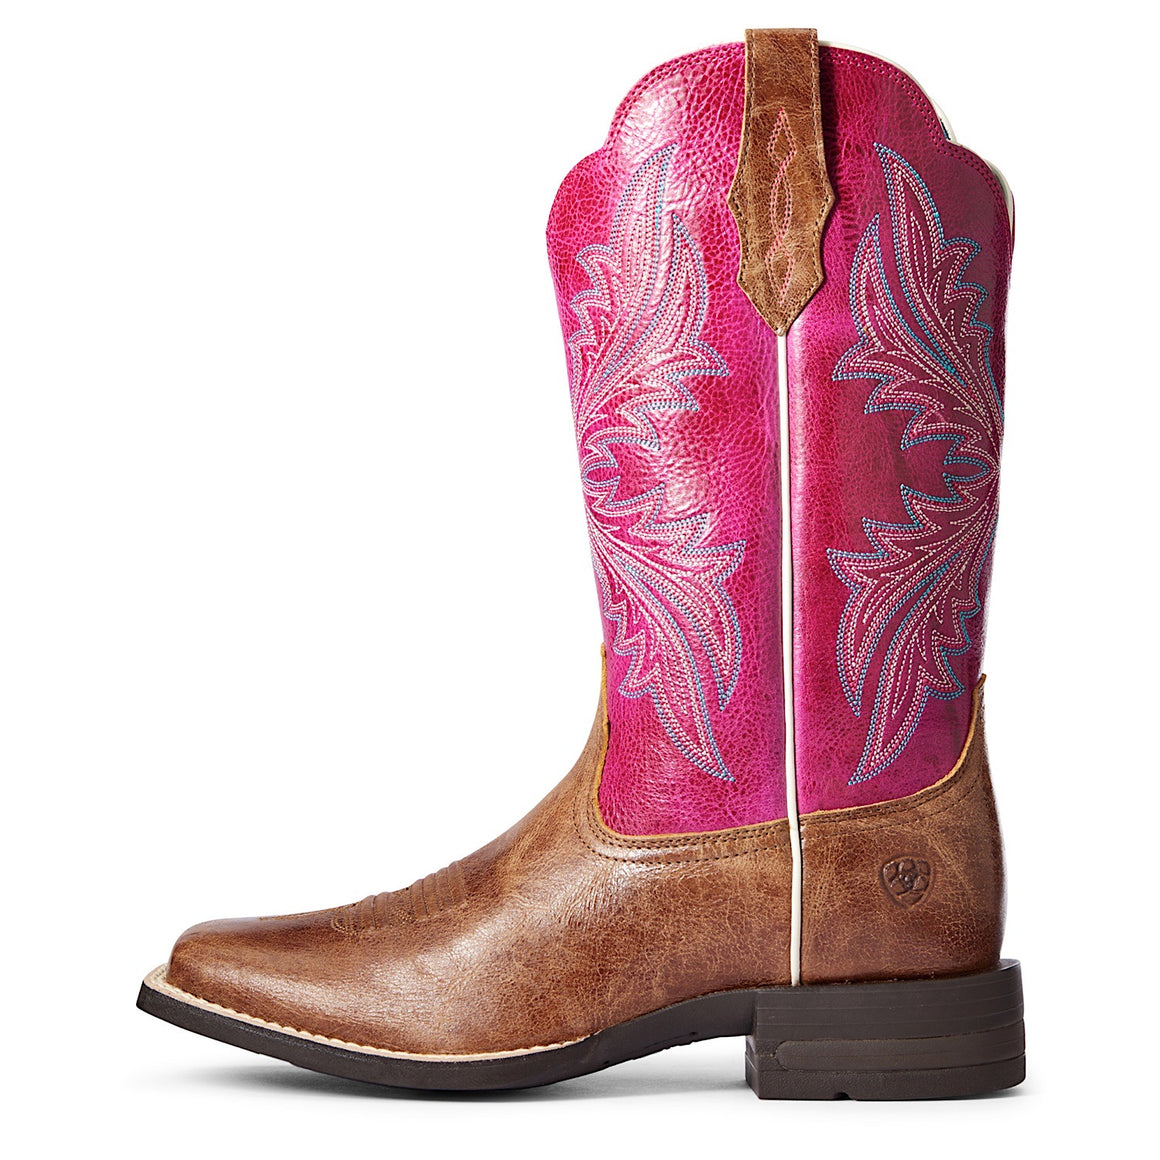 Ariat Women's West Bound Western Boot Dark Tan/Cerise